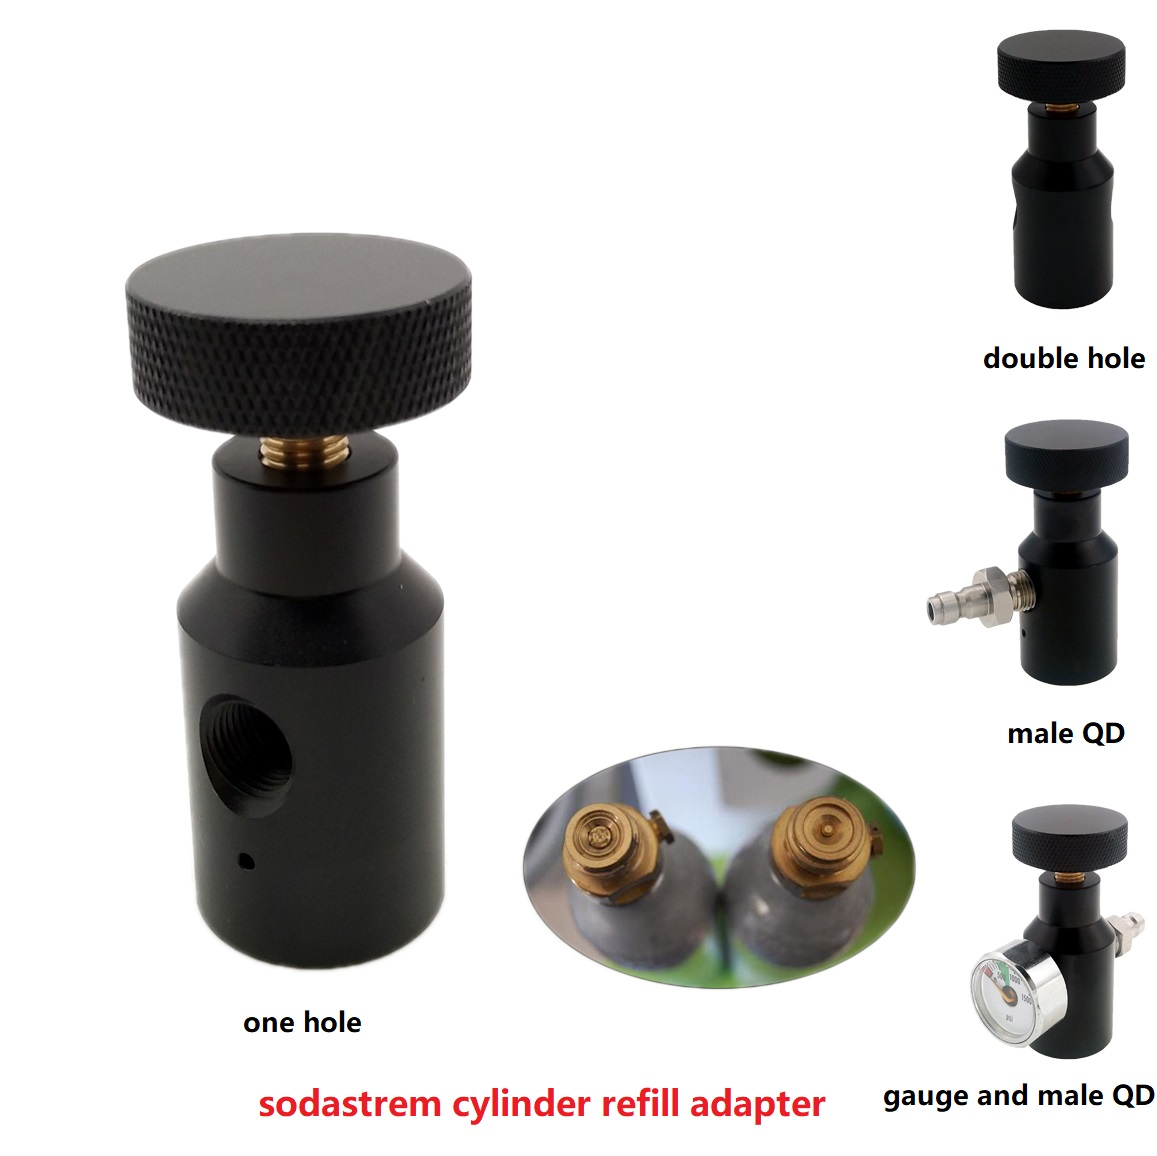 Sodastream Tank/Cylinder Fill Station On/Off Aadaptor Refill Adapter For Quick Charging